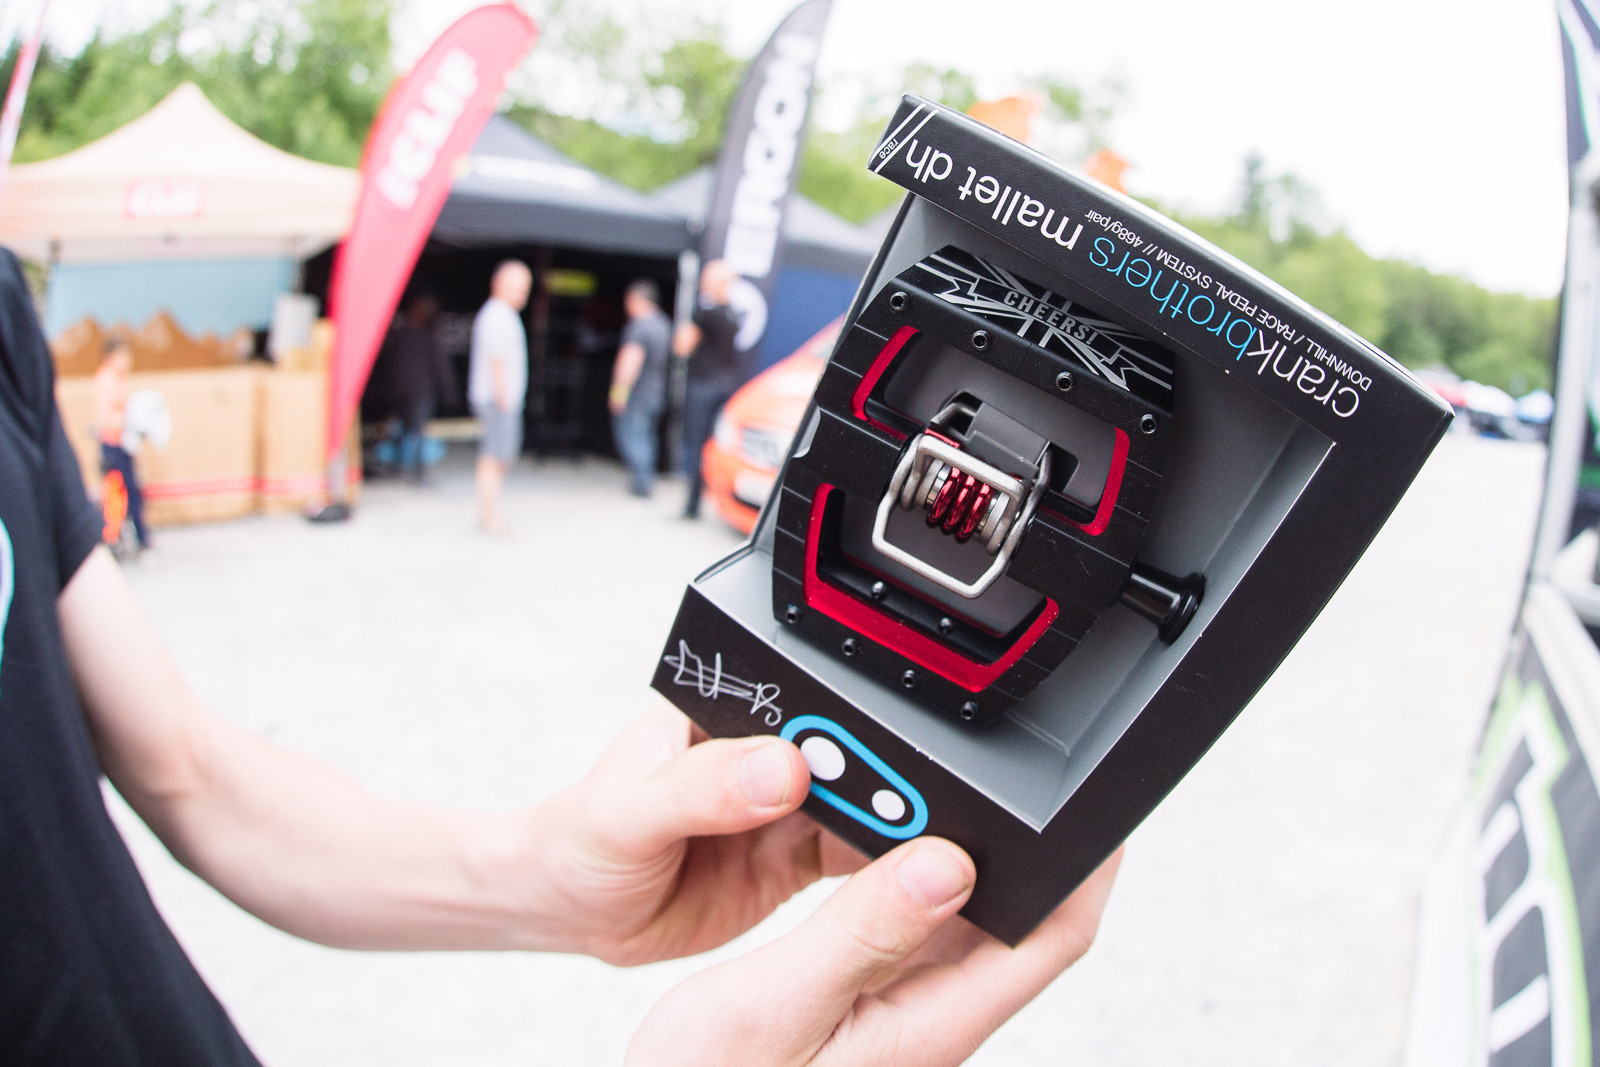 Peaty Signature Crank Brothers Mallet DH Pedals - PIT BITS - Fort William World Cup - Mountain Biking Pictures - Vital MTB